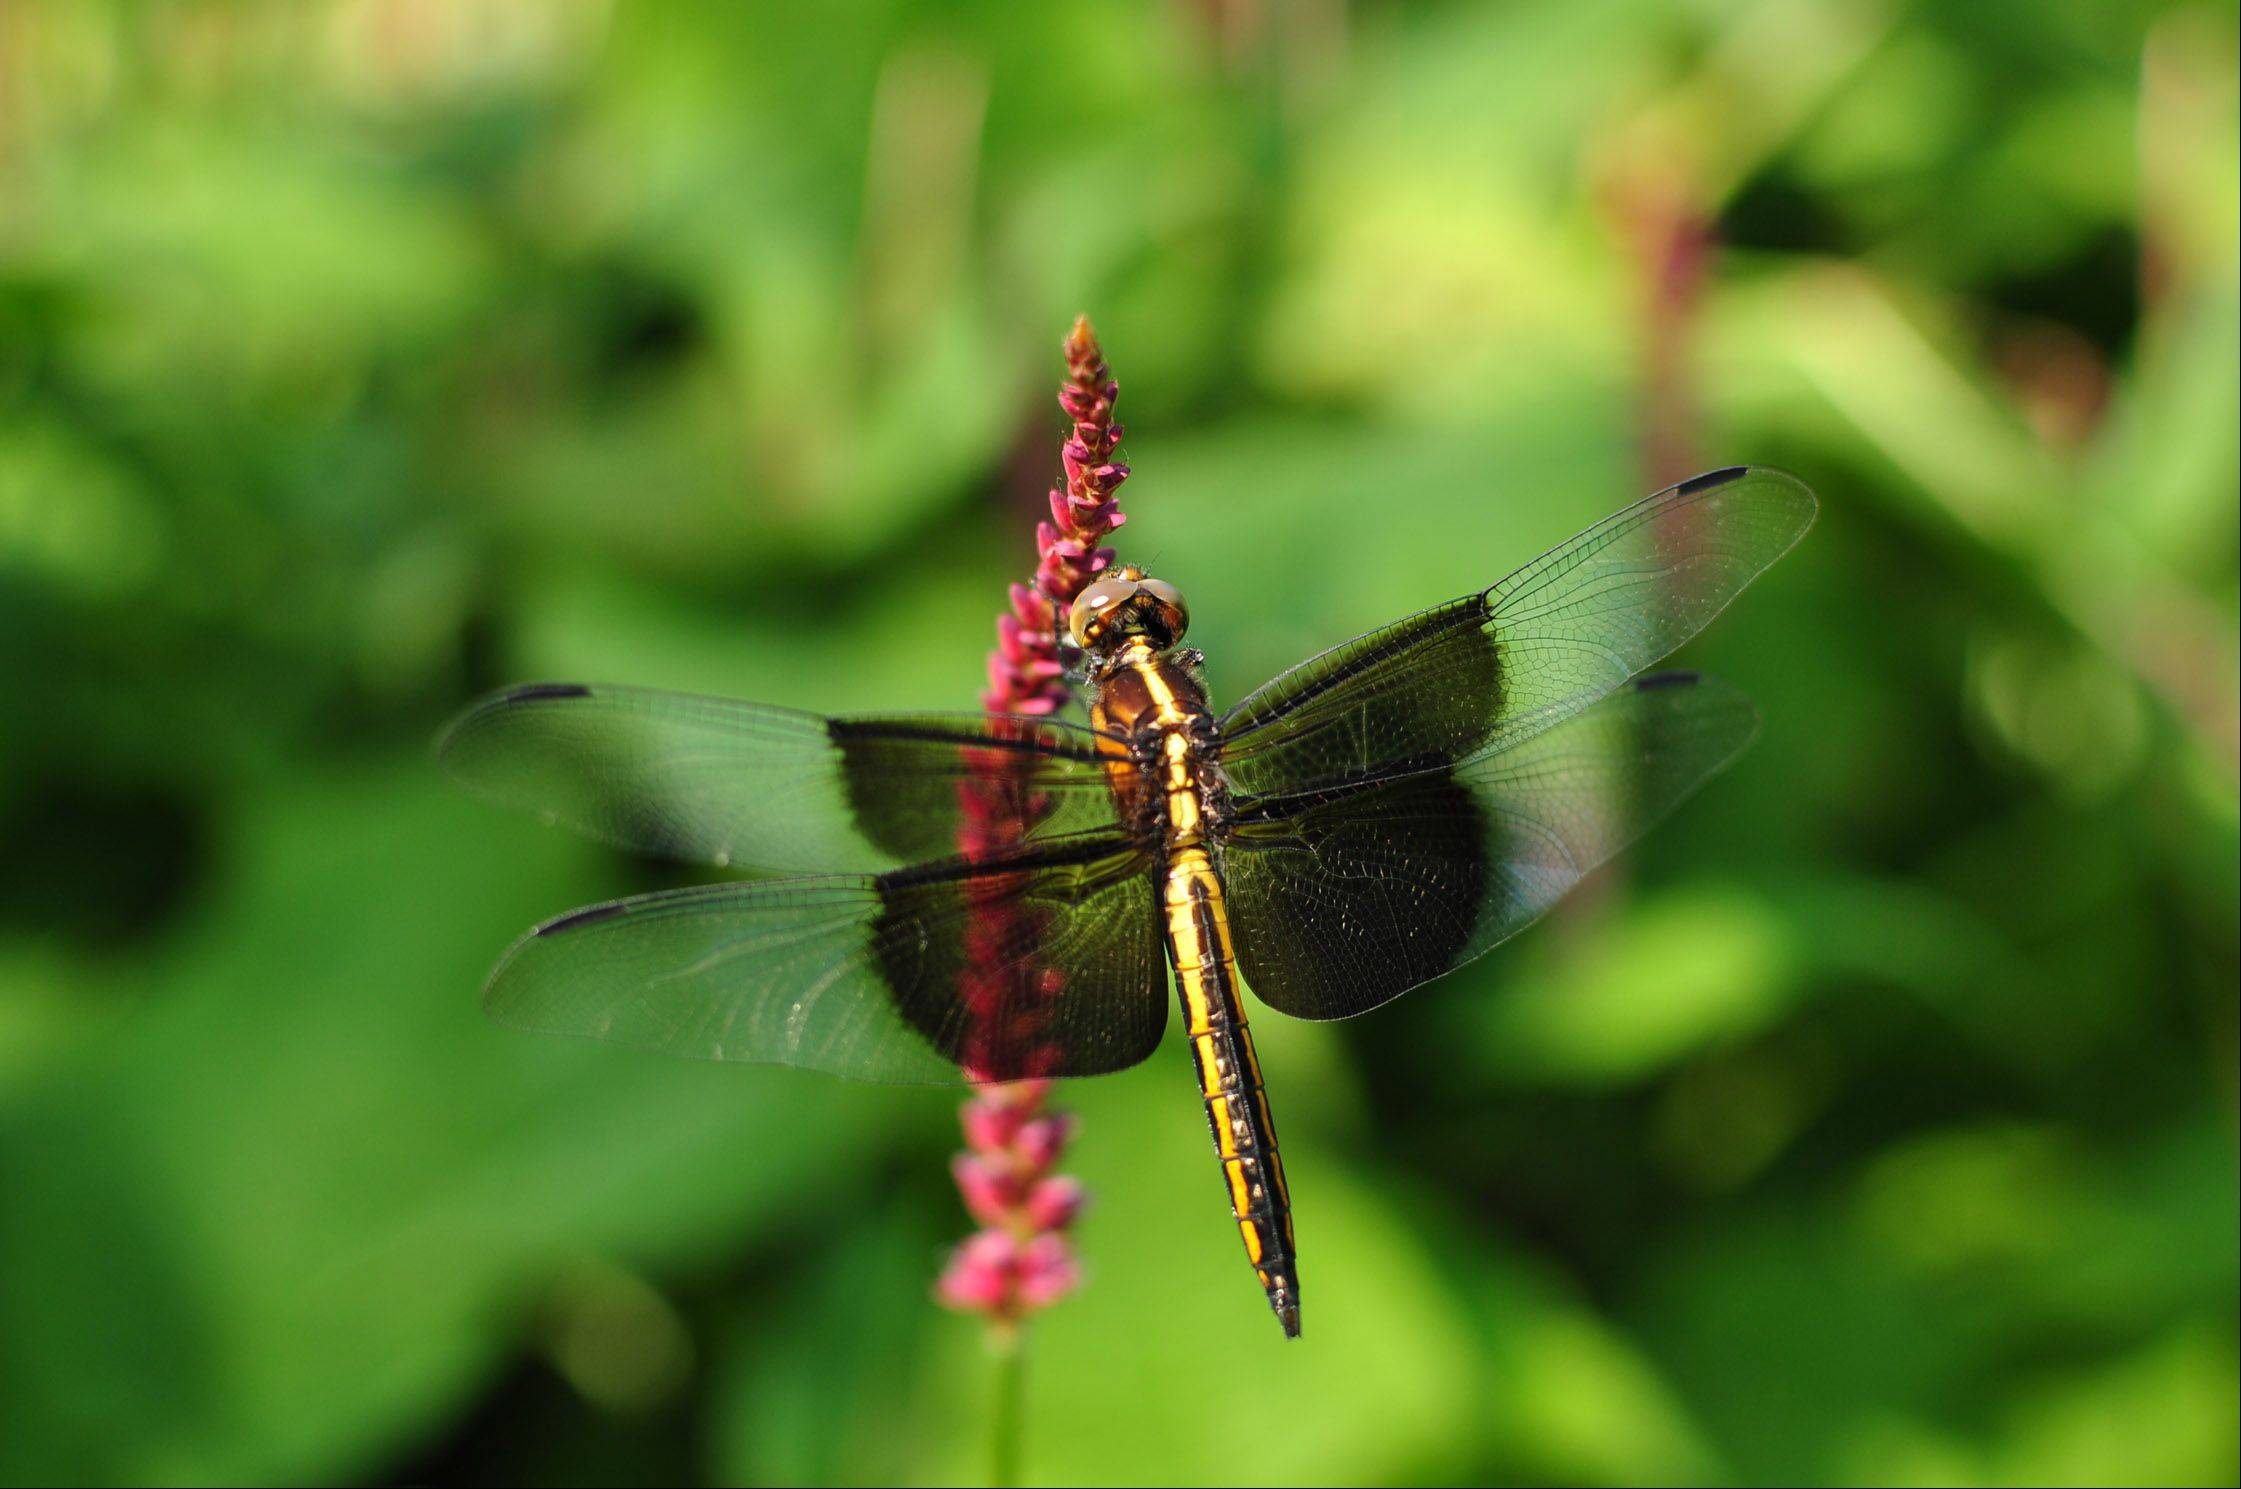 A dragonfly lands on a flower at the Chicago Botanical Garden in Glencoe.